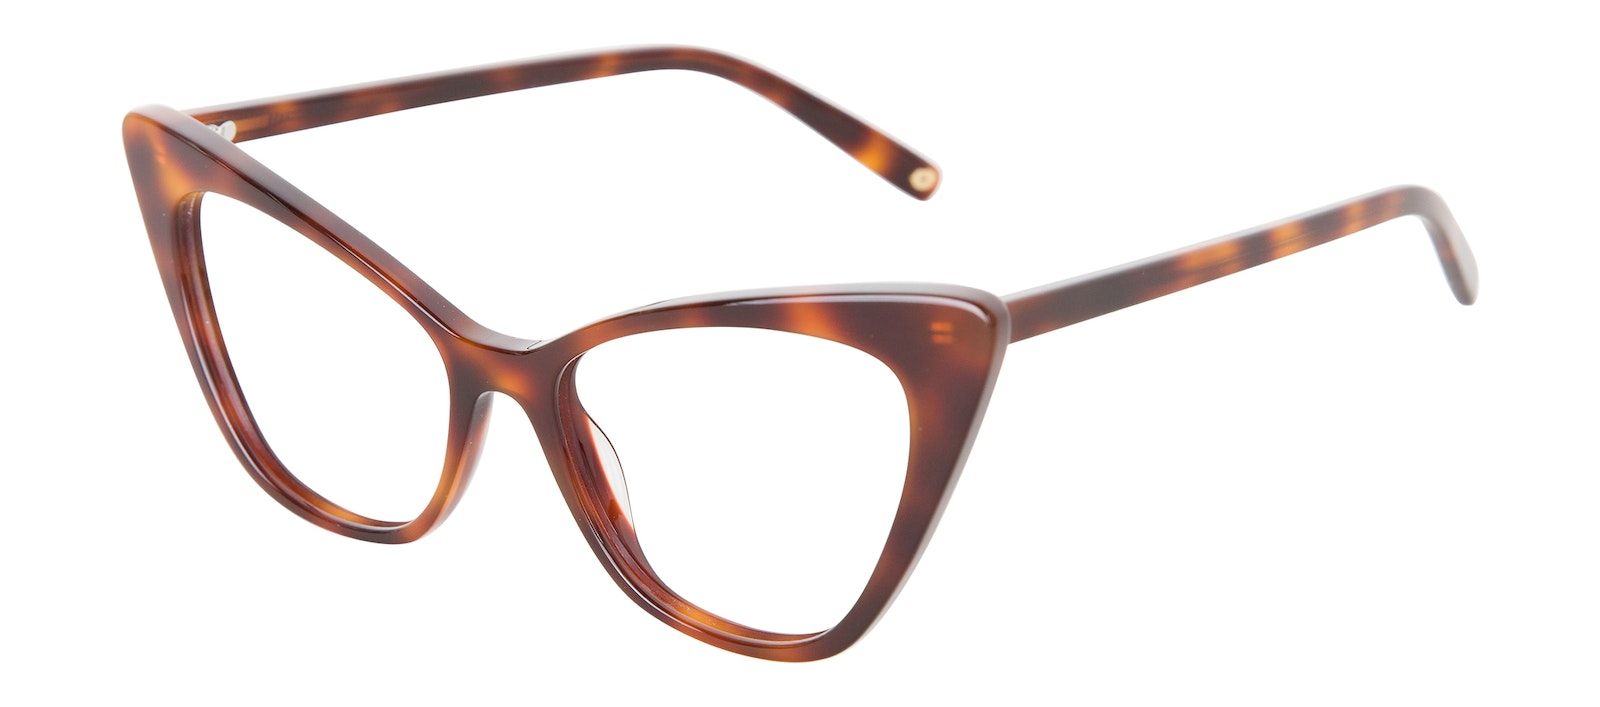 Affordable Fashion Glasses Cat Eye Eyeglasses Women Keiko Lynn Jackson Brown Tilt